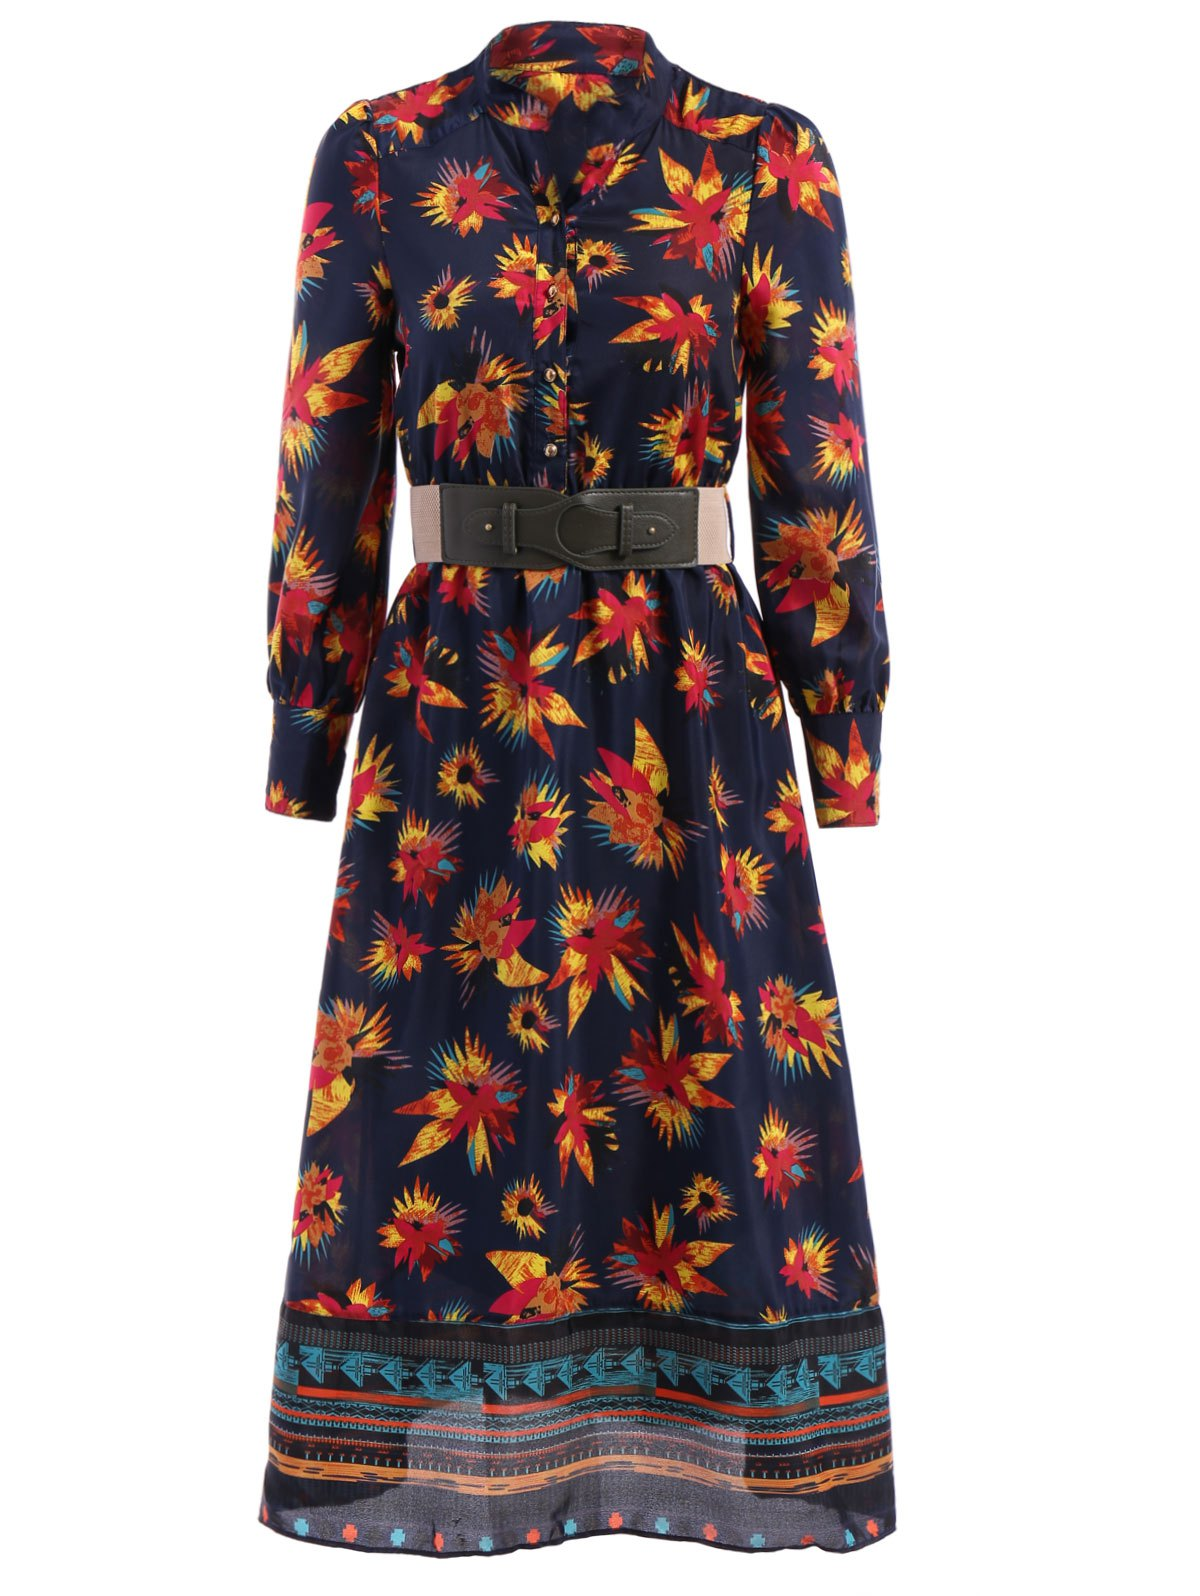 Bohemian Stand-Up Collar Long Sleeve Printed Belted Women's Dress - CADETBLUE S